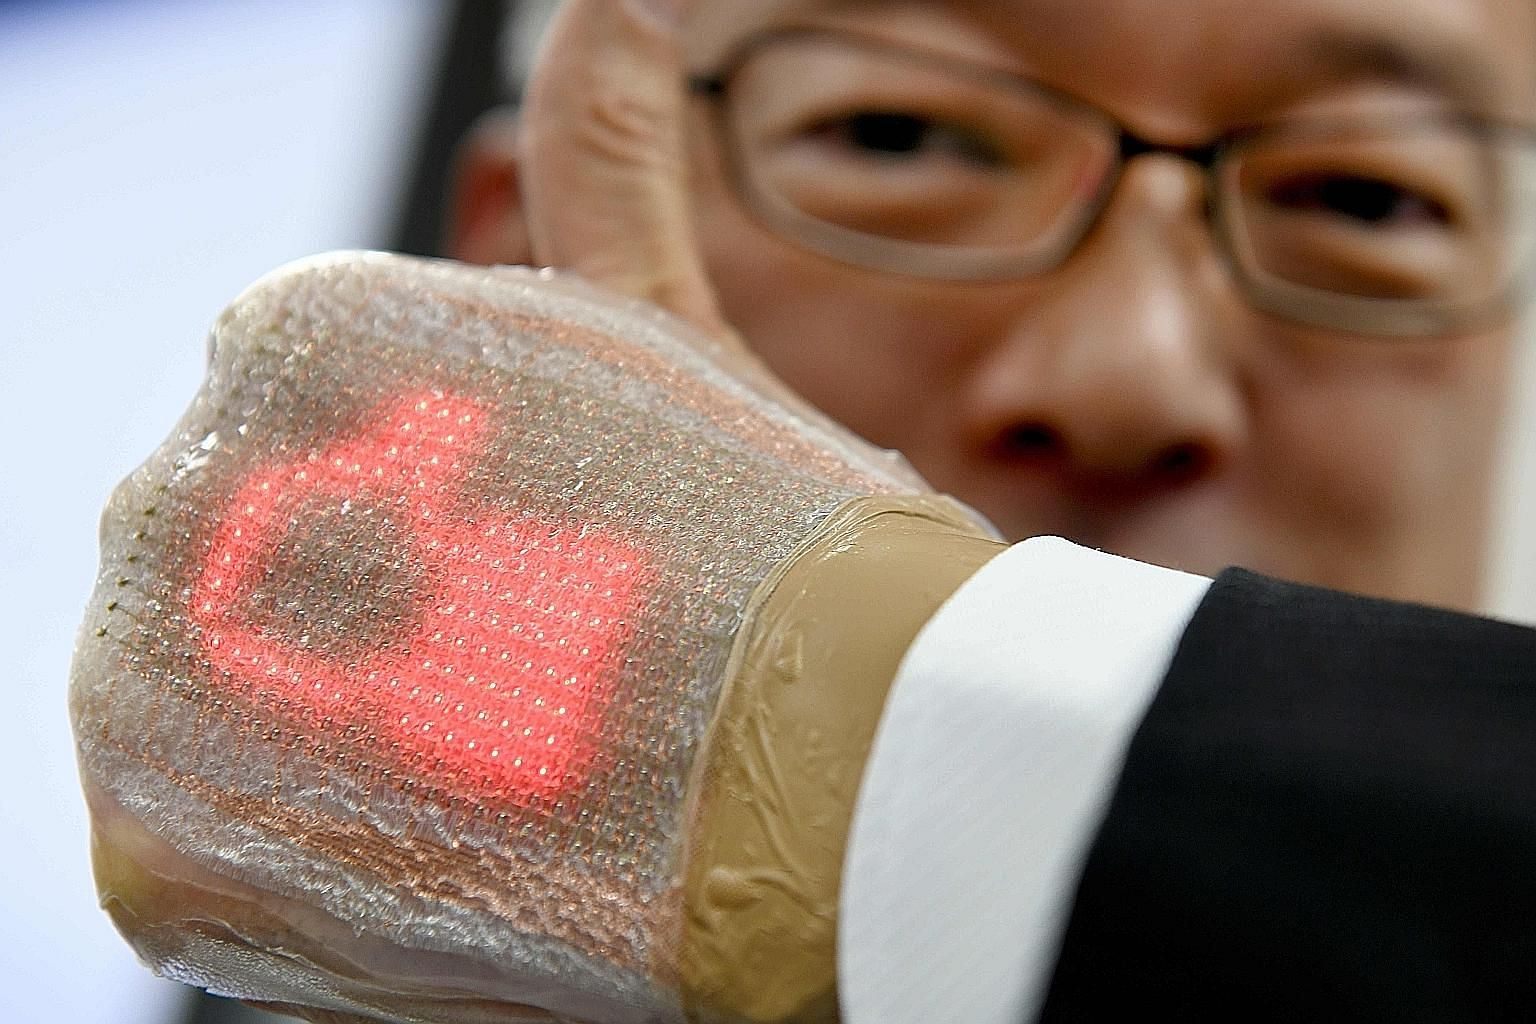 The device, developed by University of Tokyo's Professor Takao Someya, is only 1mm thick and can send and receive messages, including emojis. The plaster-like invention can be placed on the human body for a week without causing skin inflammation.